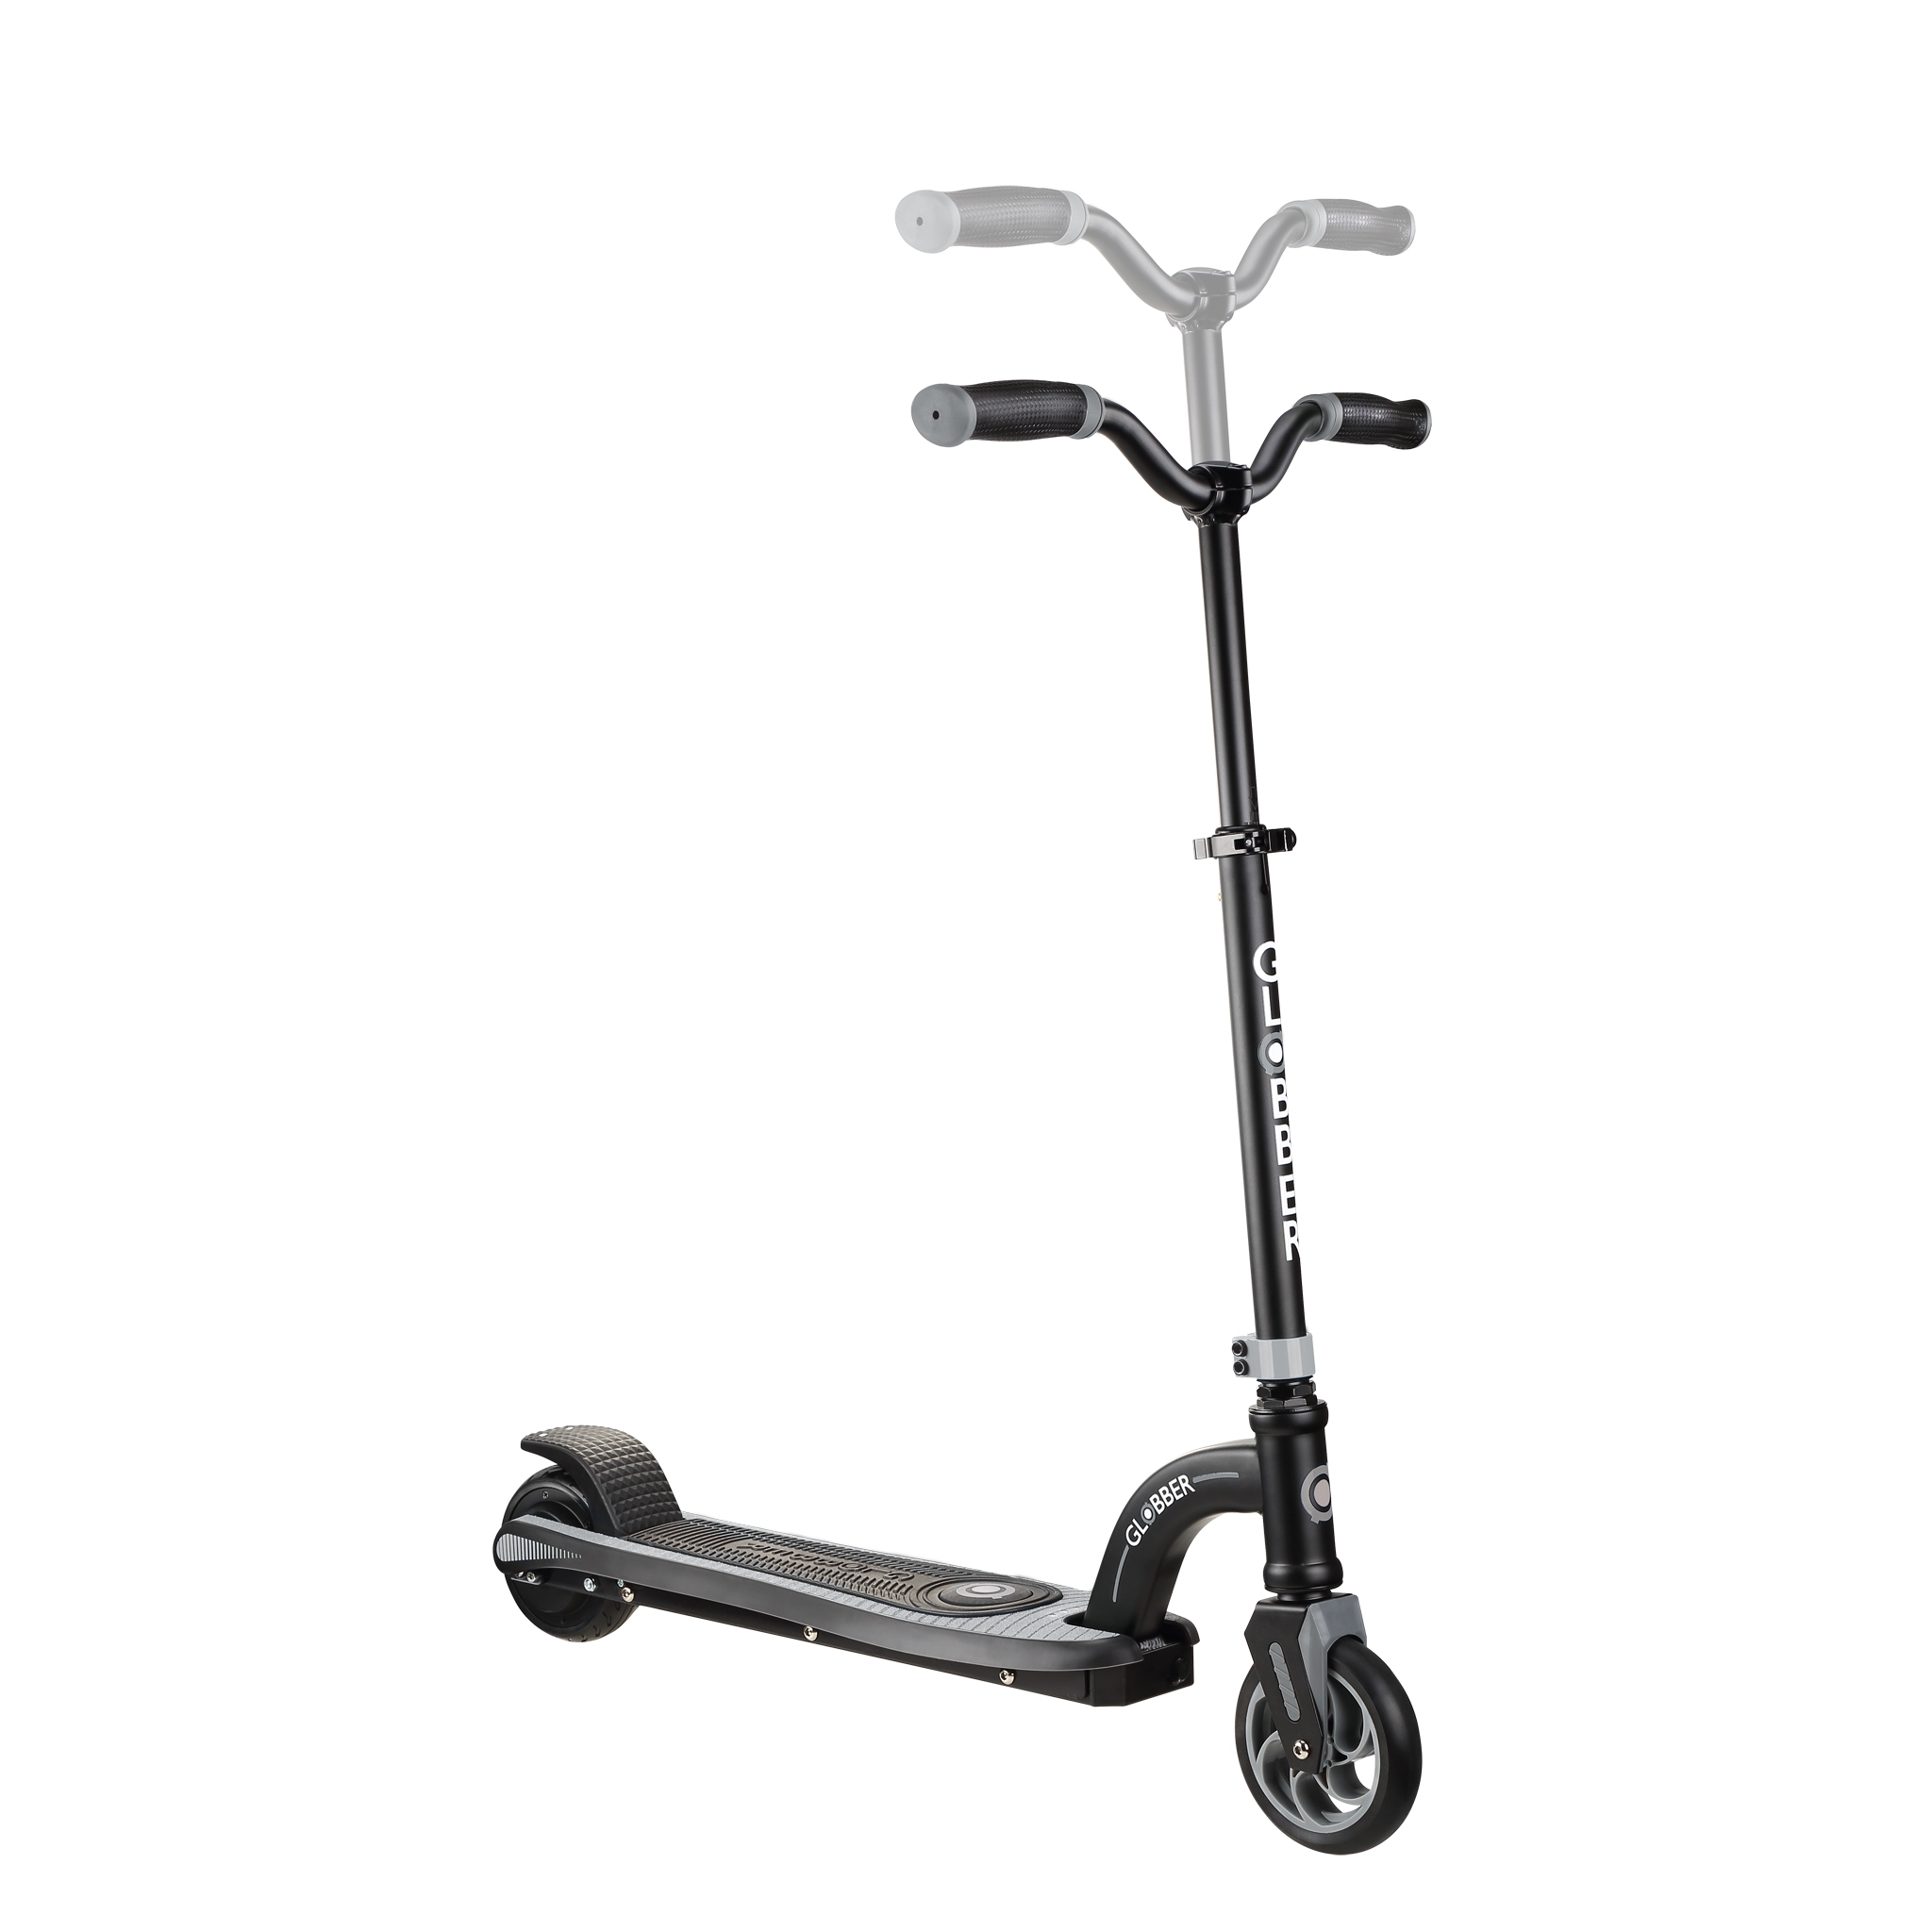 Globber-ONE-K-E-MOTION-10-best-electric-scooter-for-kids-aged-8+-adjustable-e-scooter-grey